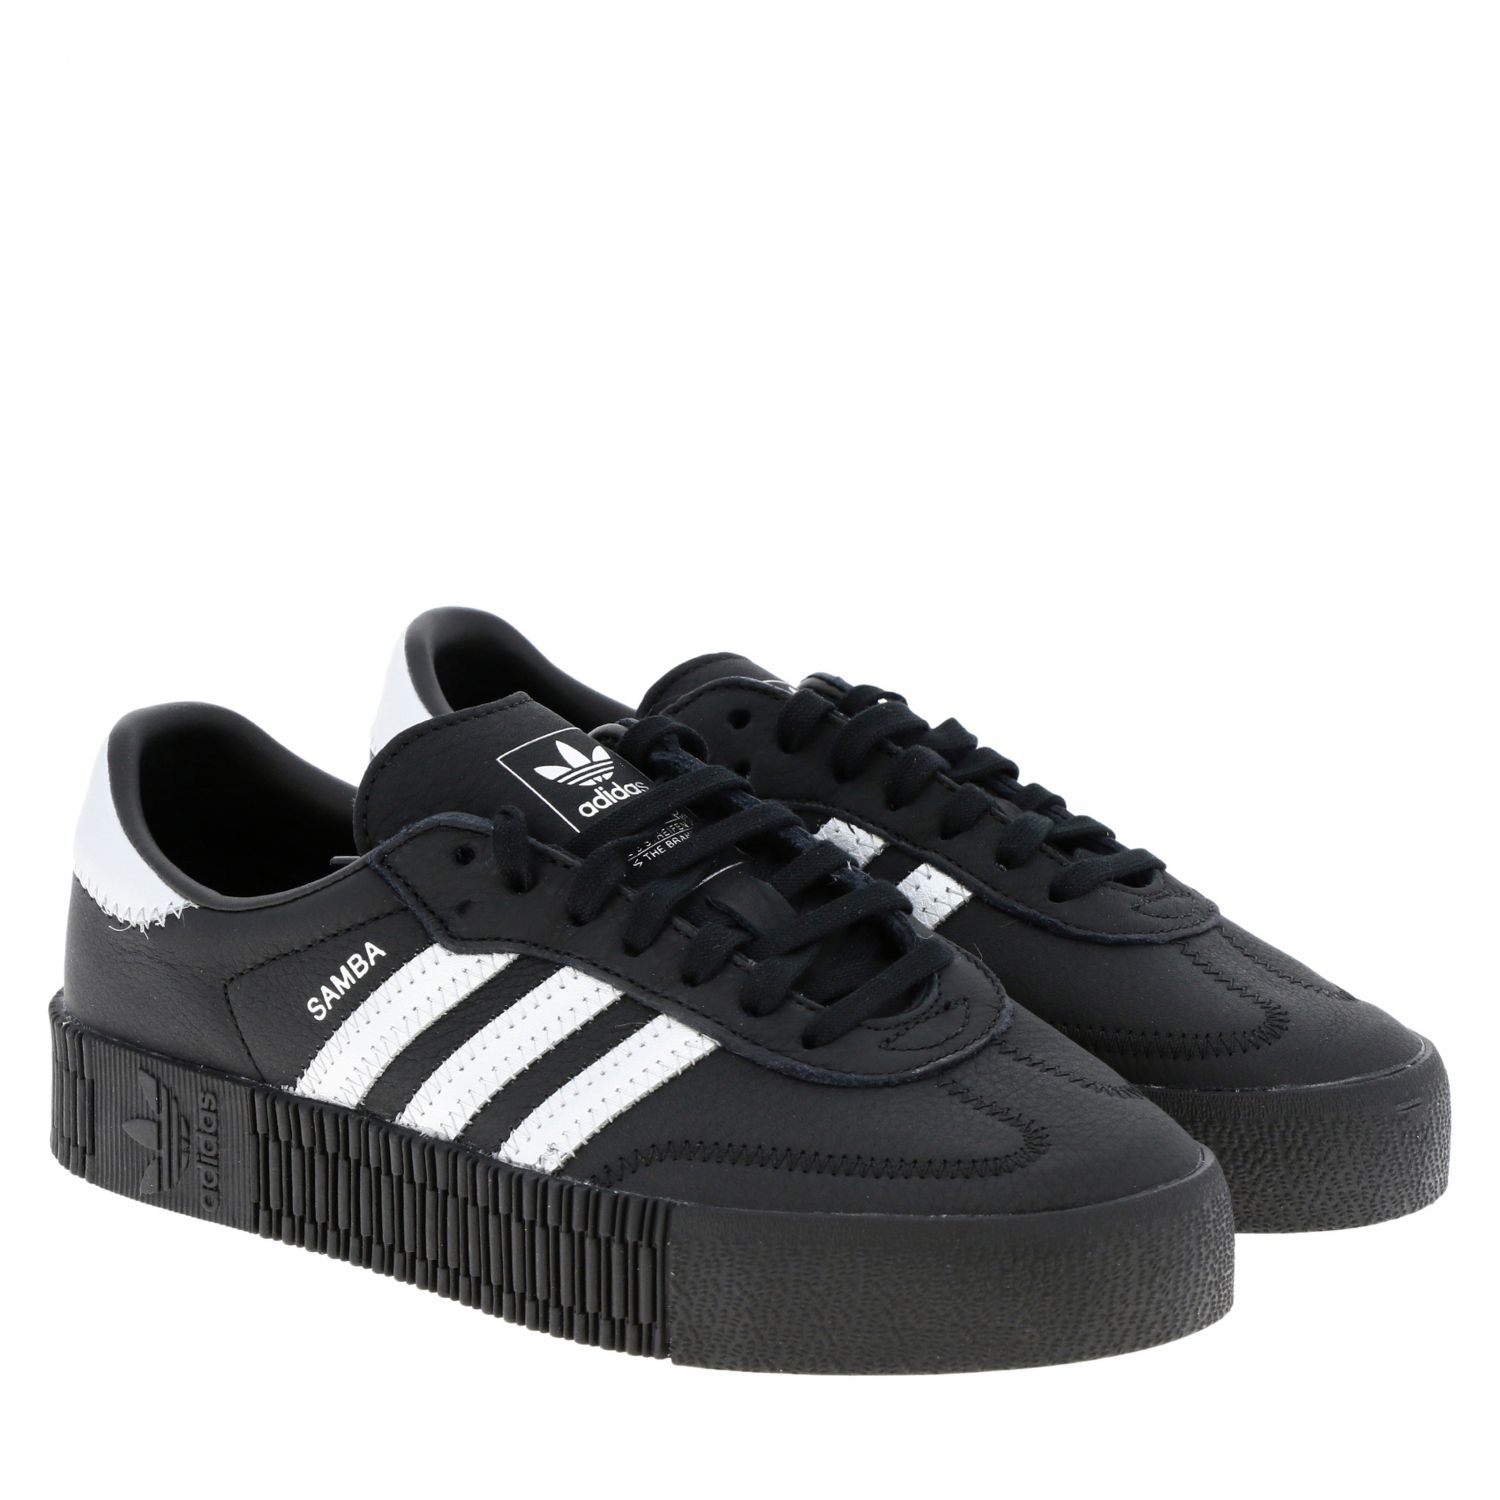 Sneakers Adidas Originals: Adidas Samba Originals By Pharrell Williams sneakers in smooth and laminated leather black 2